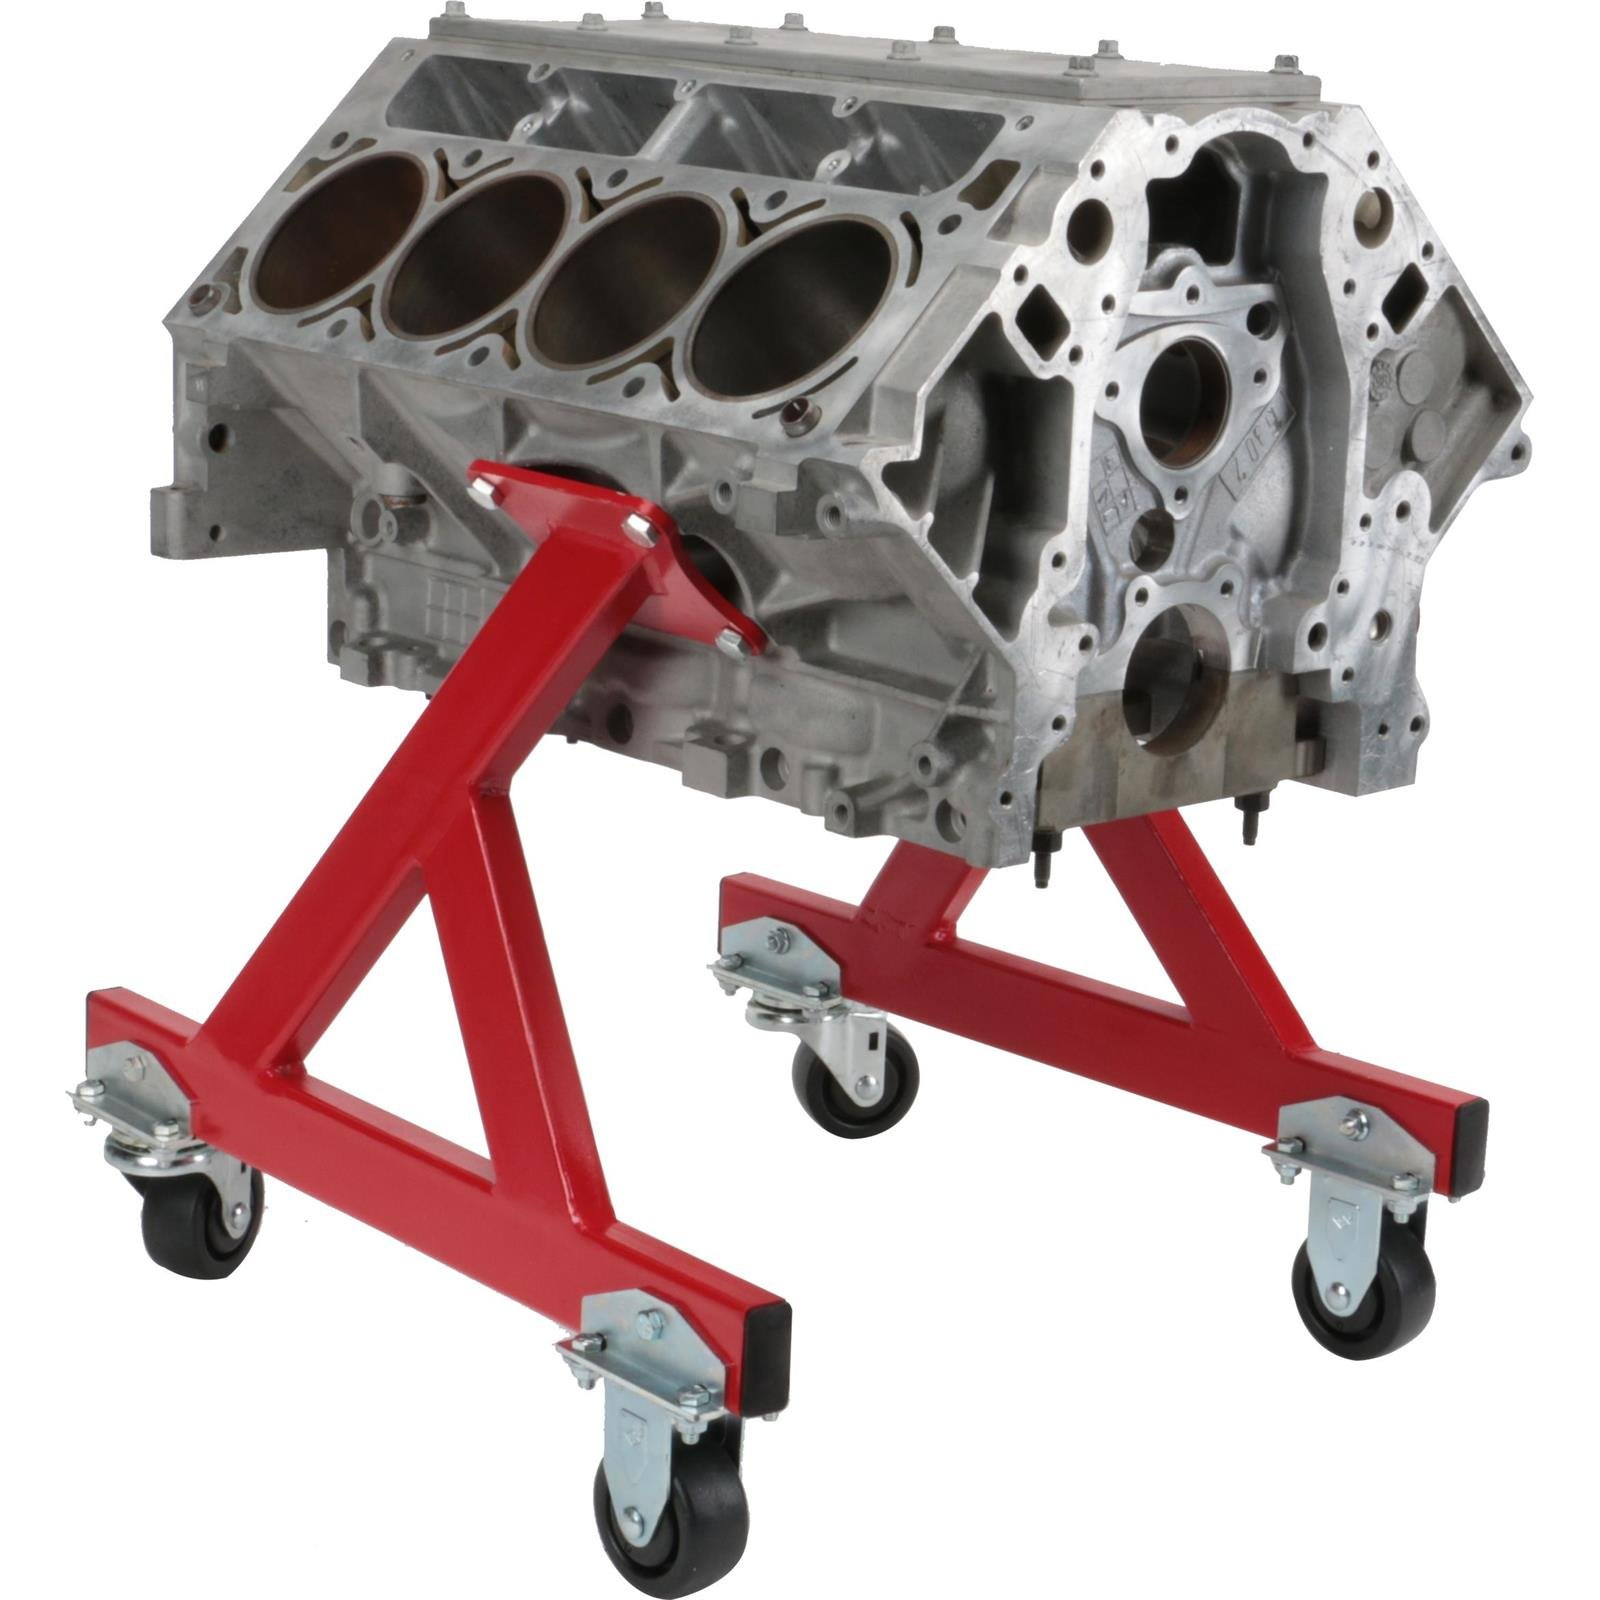 GM Chevy V8 LSx Rolling Engine Storage Stand by Speedway Motors